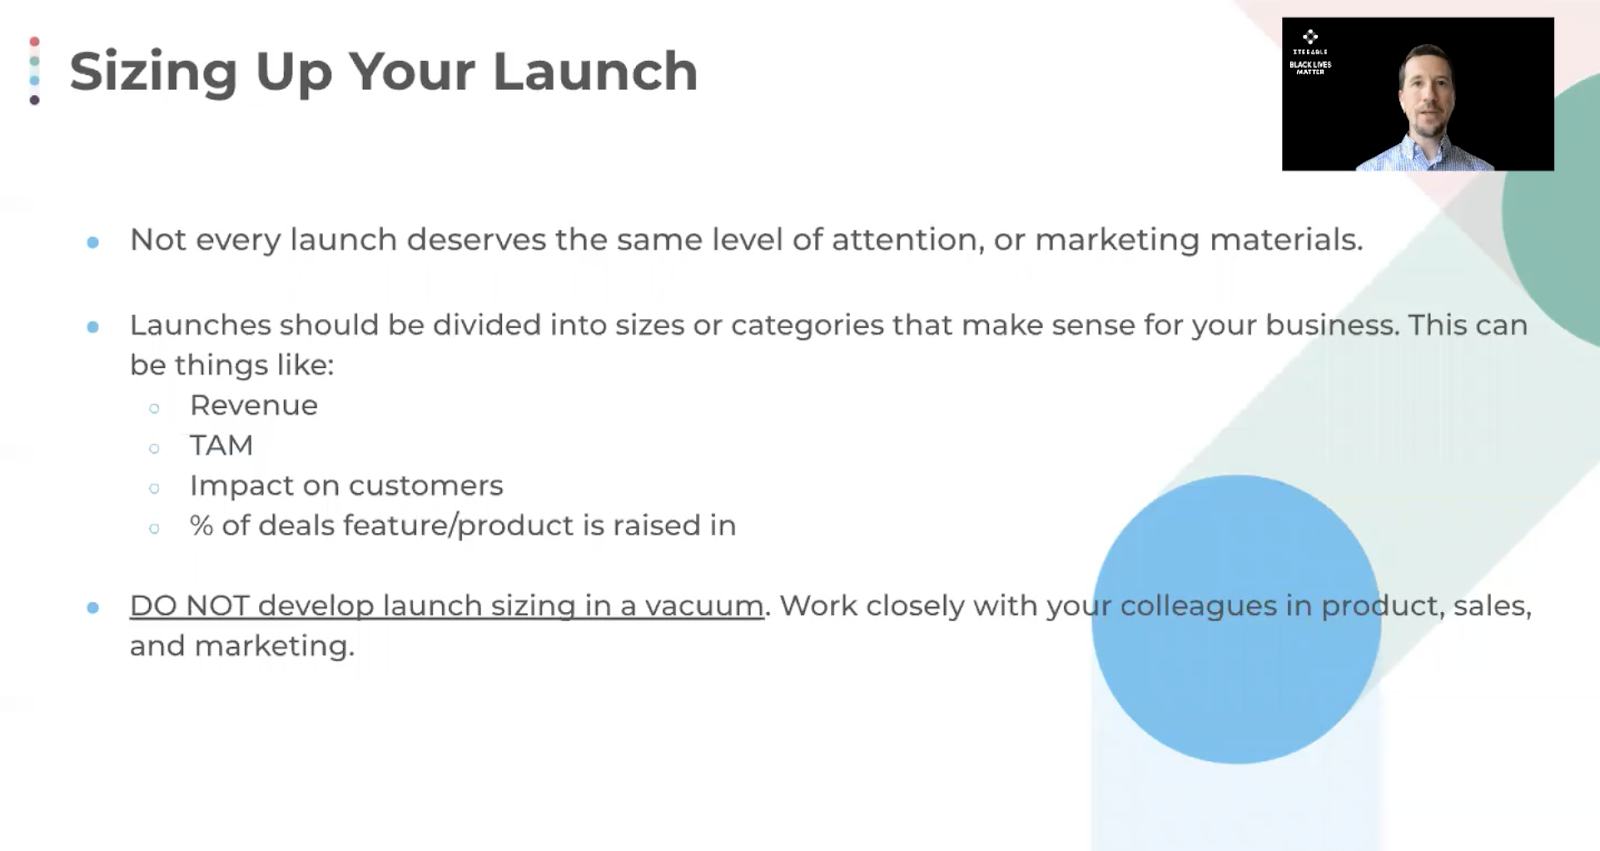 Size up your product launch; not every launch deserves the same level of intention or materials that you'll produce